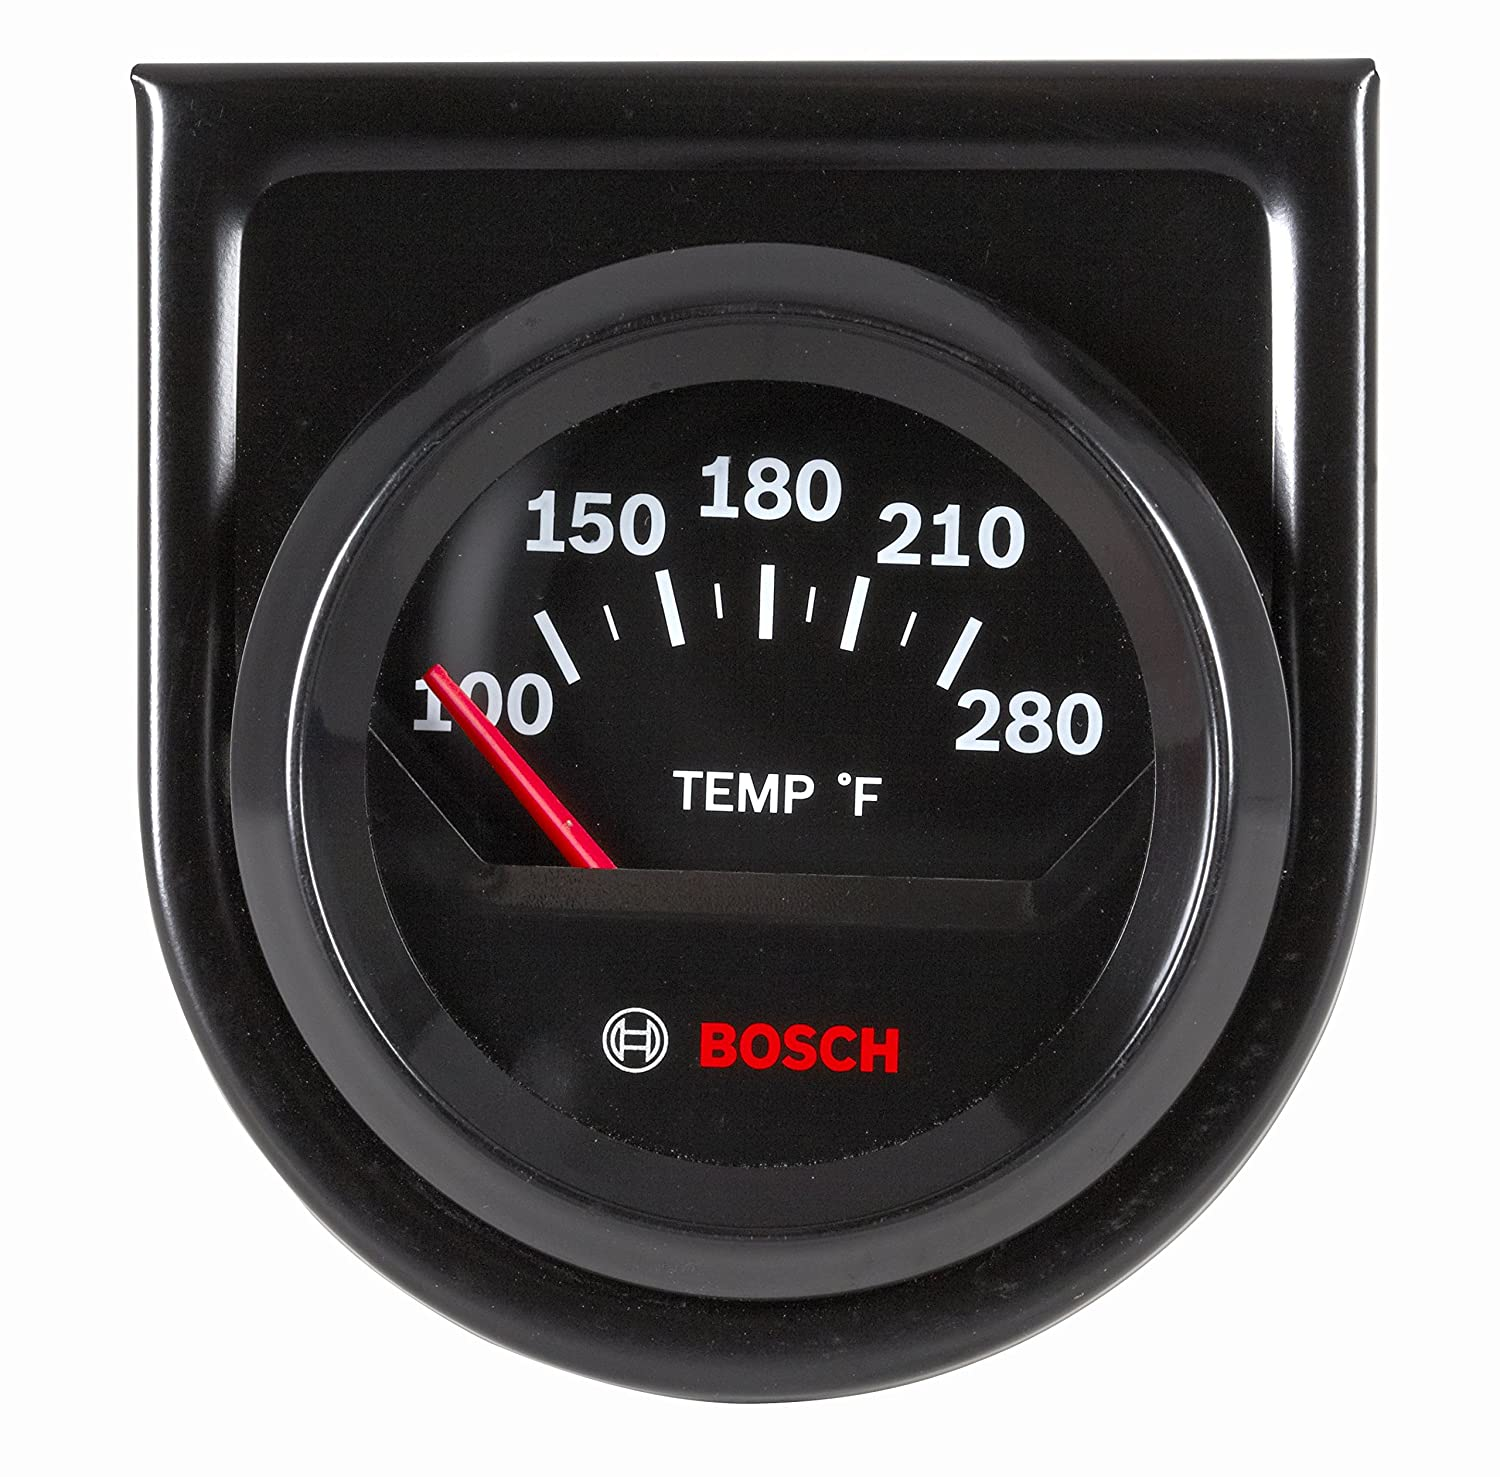 Bosch SP0F000049 Style Line 2' Electrical Water/Oil Temperature Gauge (Black Dial Face, Black Bezel)